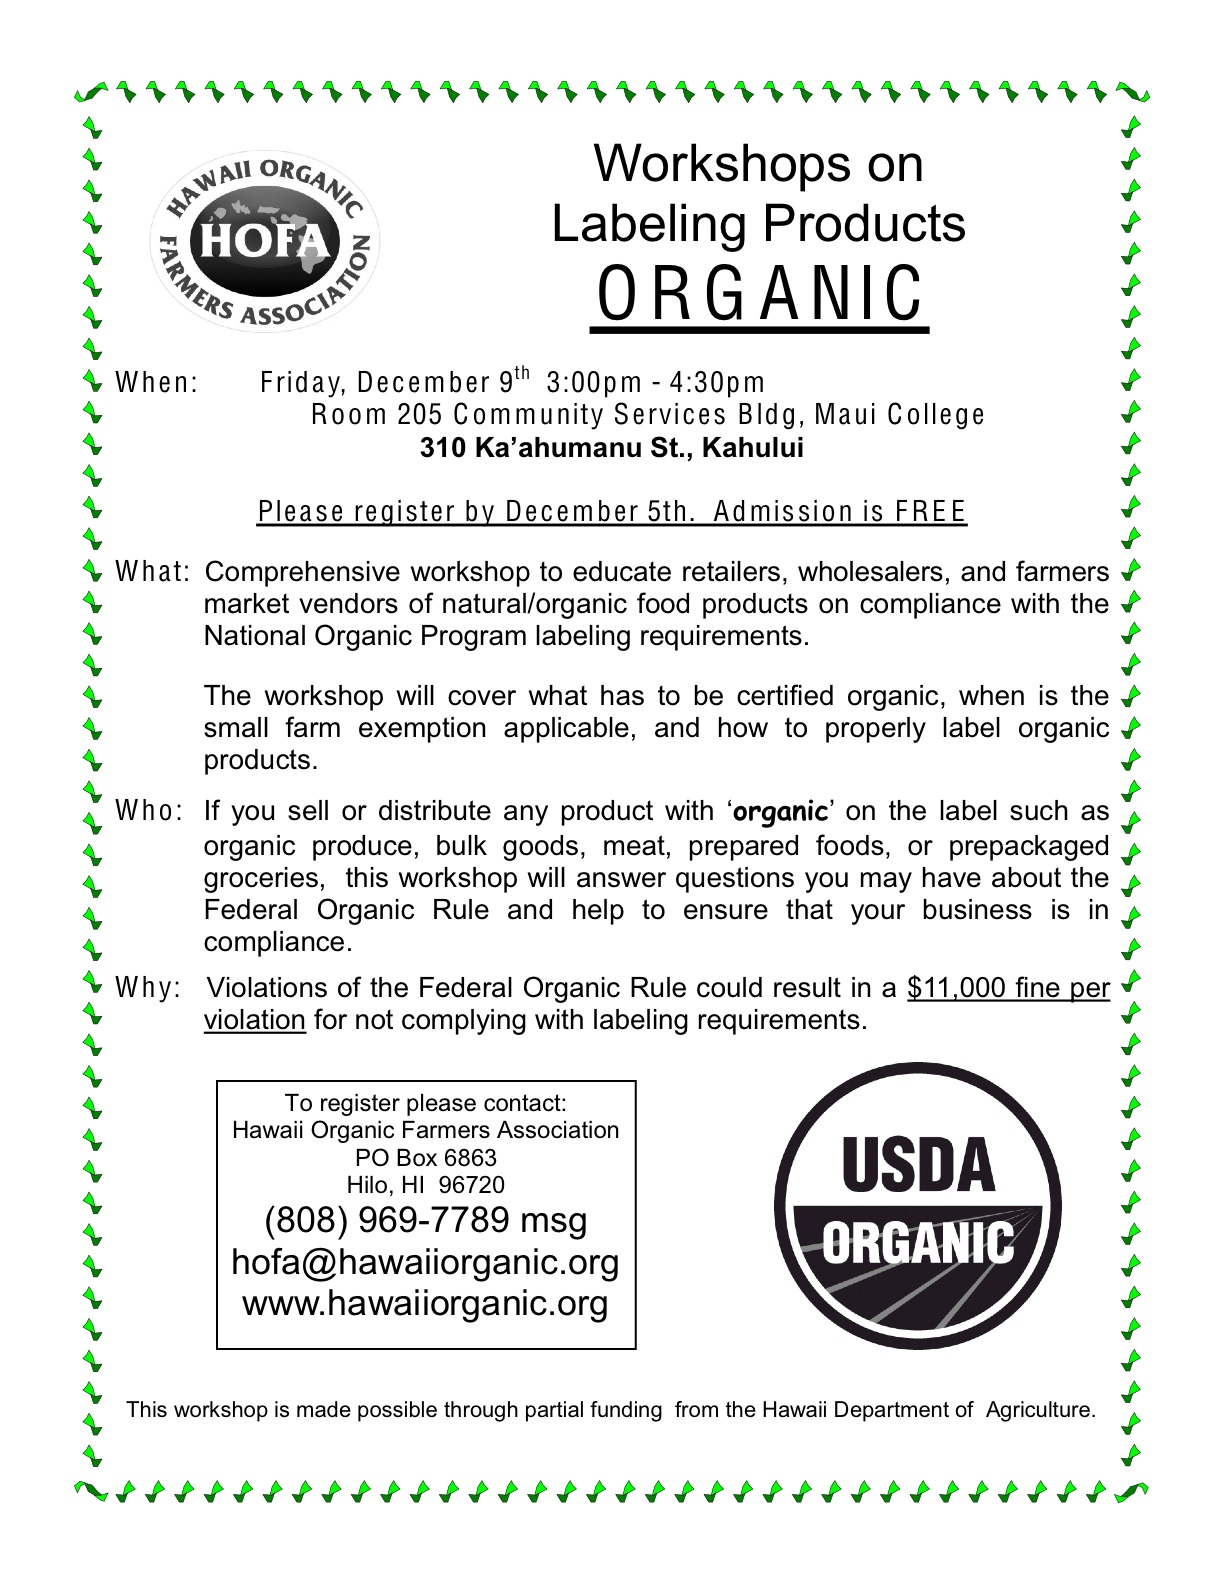 Hofa Workshop On Labeling Products Organic